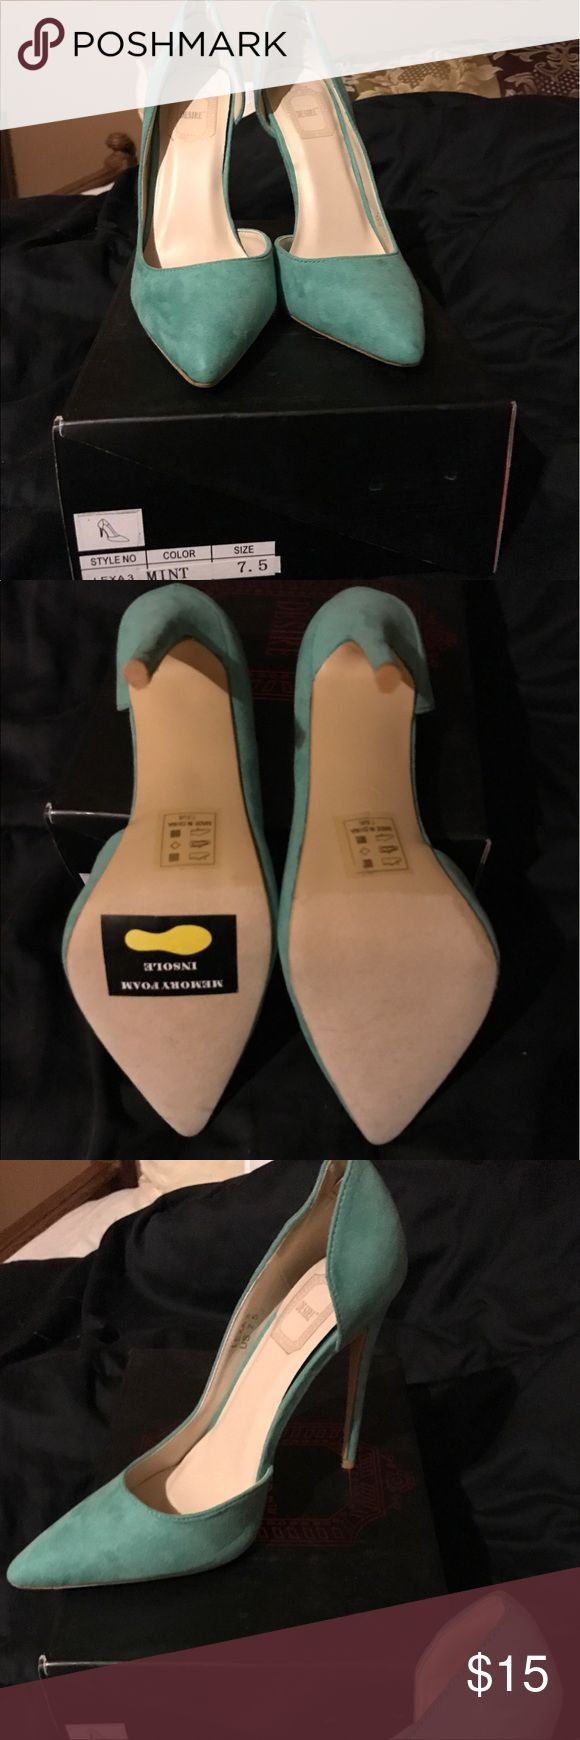 Mint 4 inch heels 7.5 Mint colored heals with box. Never worn, only tried on. 4 inch heel size 7.5. True to size. Perfect for adding a pop of color to your summer wardrobe. Memory foam insole for comfort! Desire Shoes Heels